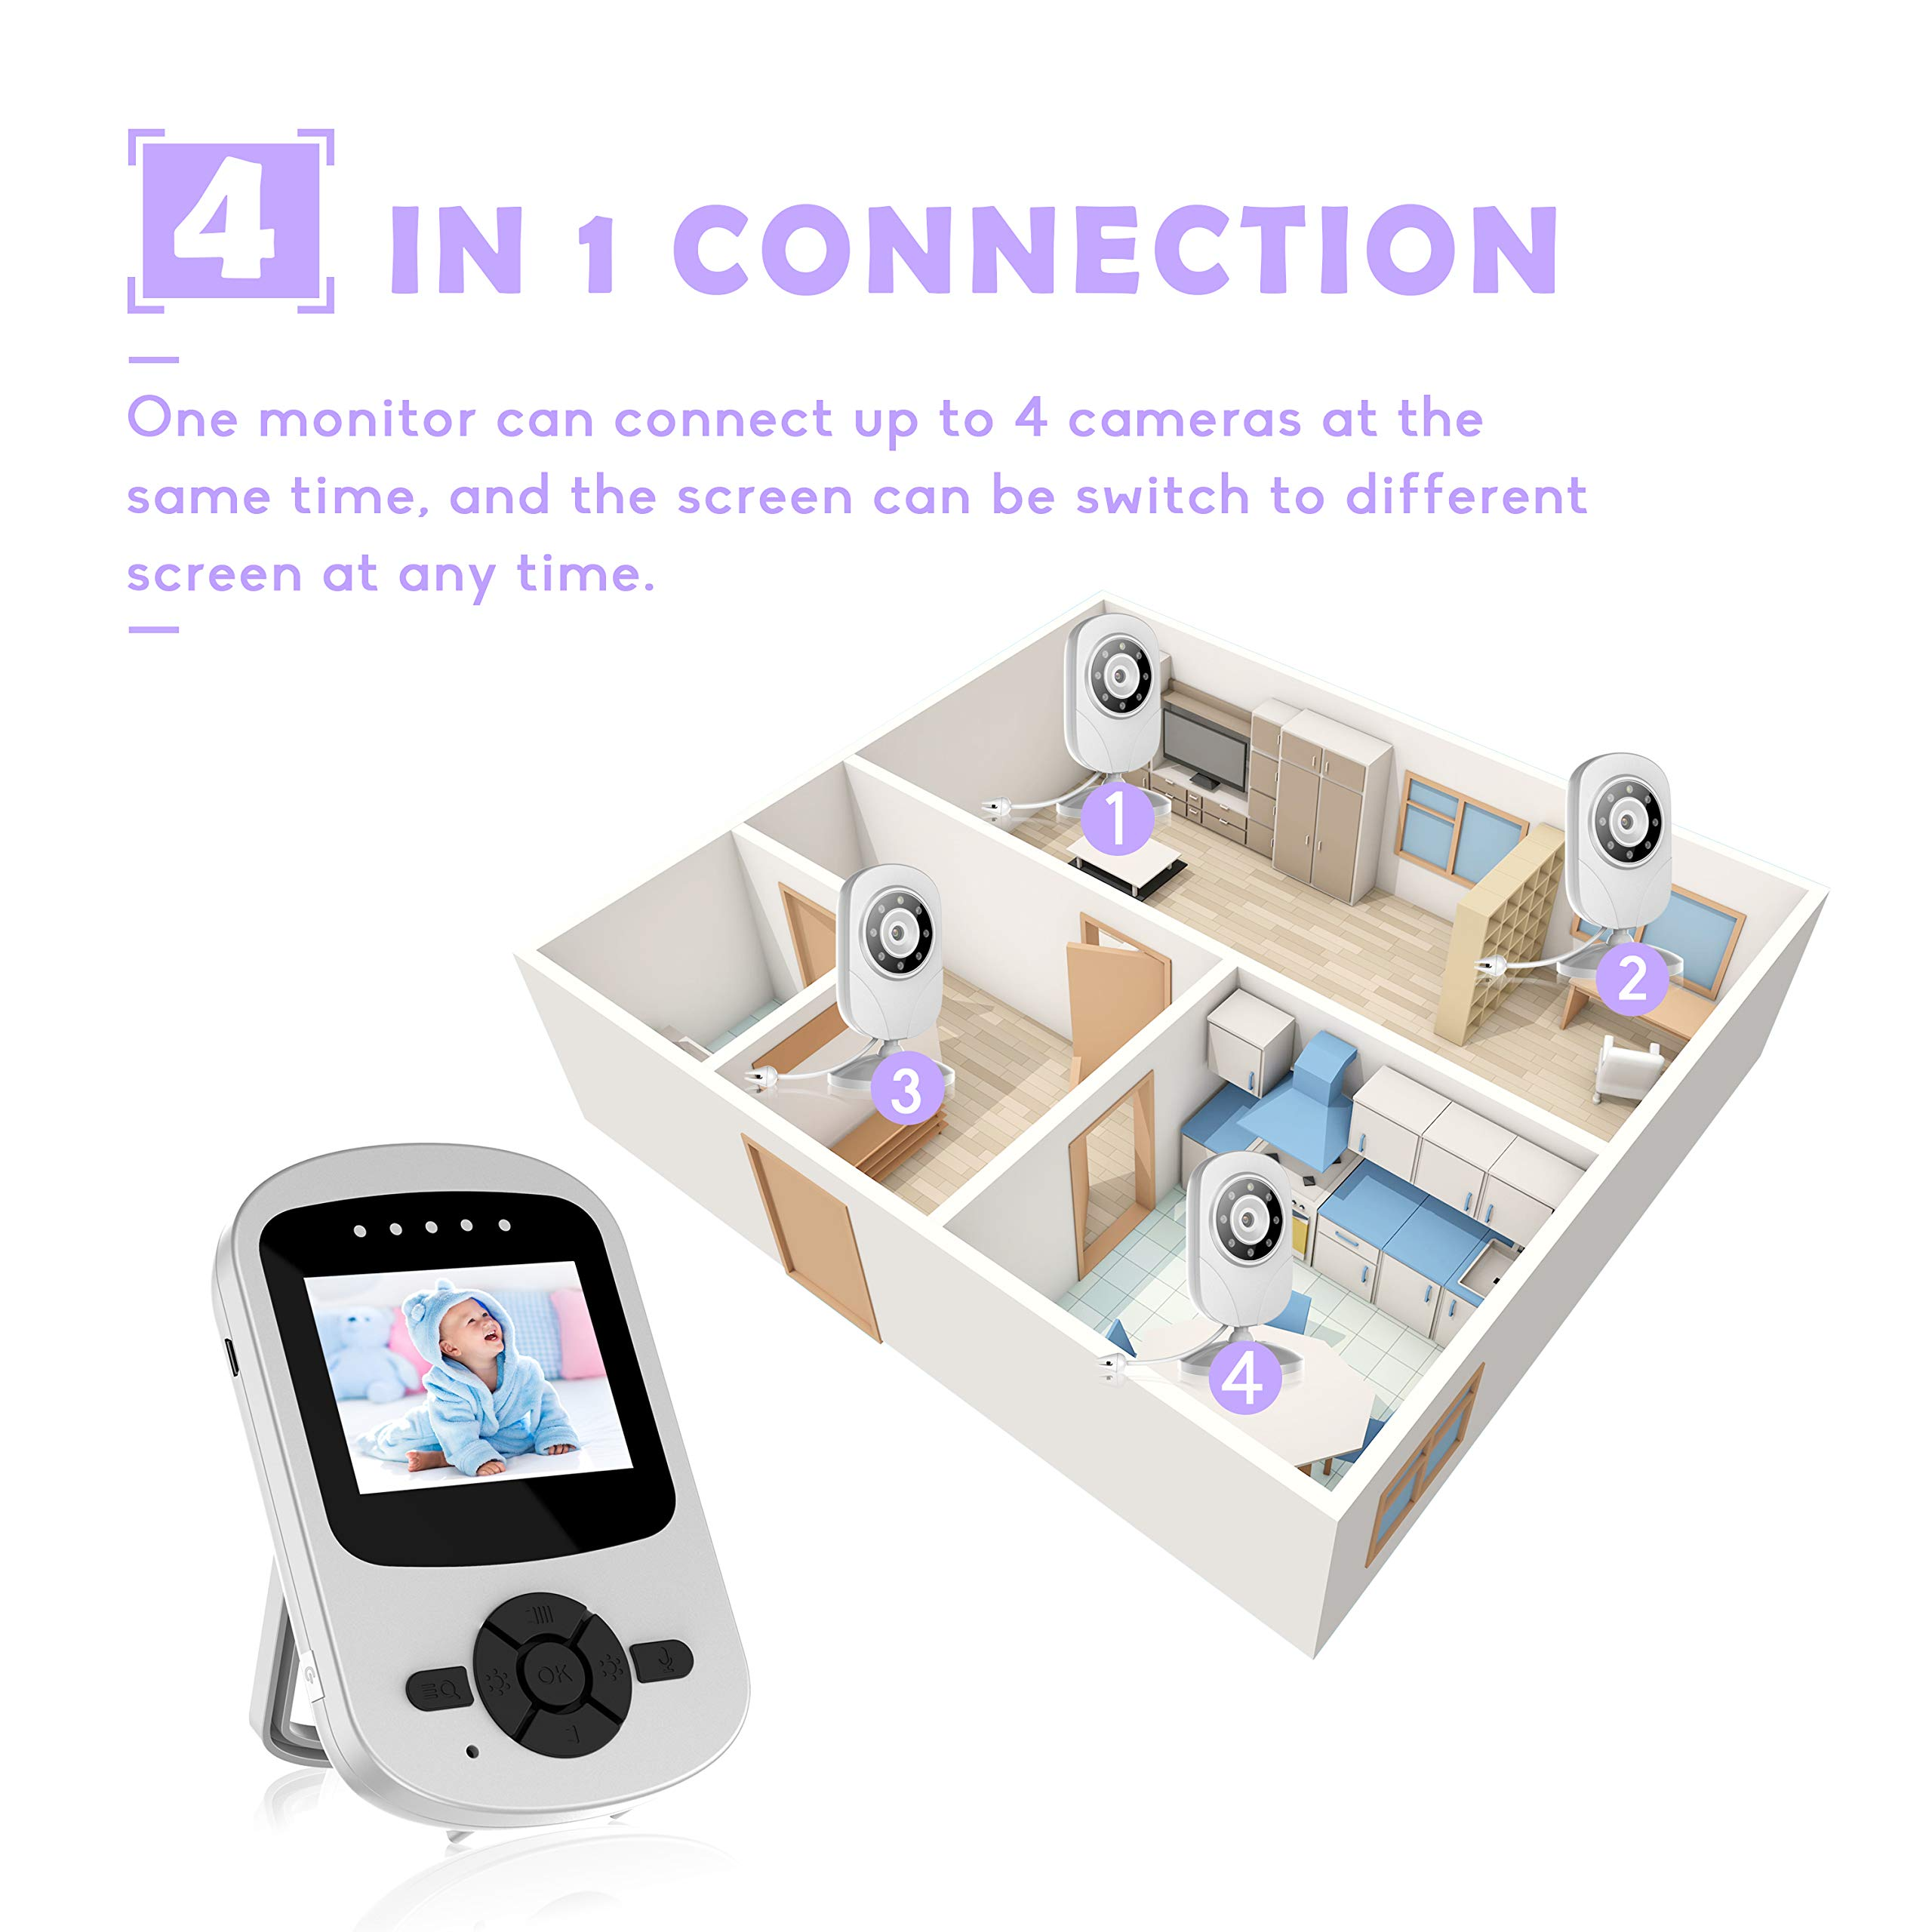 【2019 New Version】Campark Video Baby Monitor with Camera Infant Digital Cam Optics with Infrared Night Vision 2.4'' LCD 2.4GHz Wireless Transmission Two Way Talk Temperature Sensor VOX 4 in 1 Connect by Campark (Image #8)